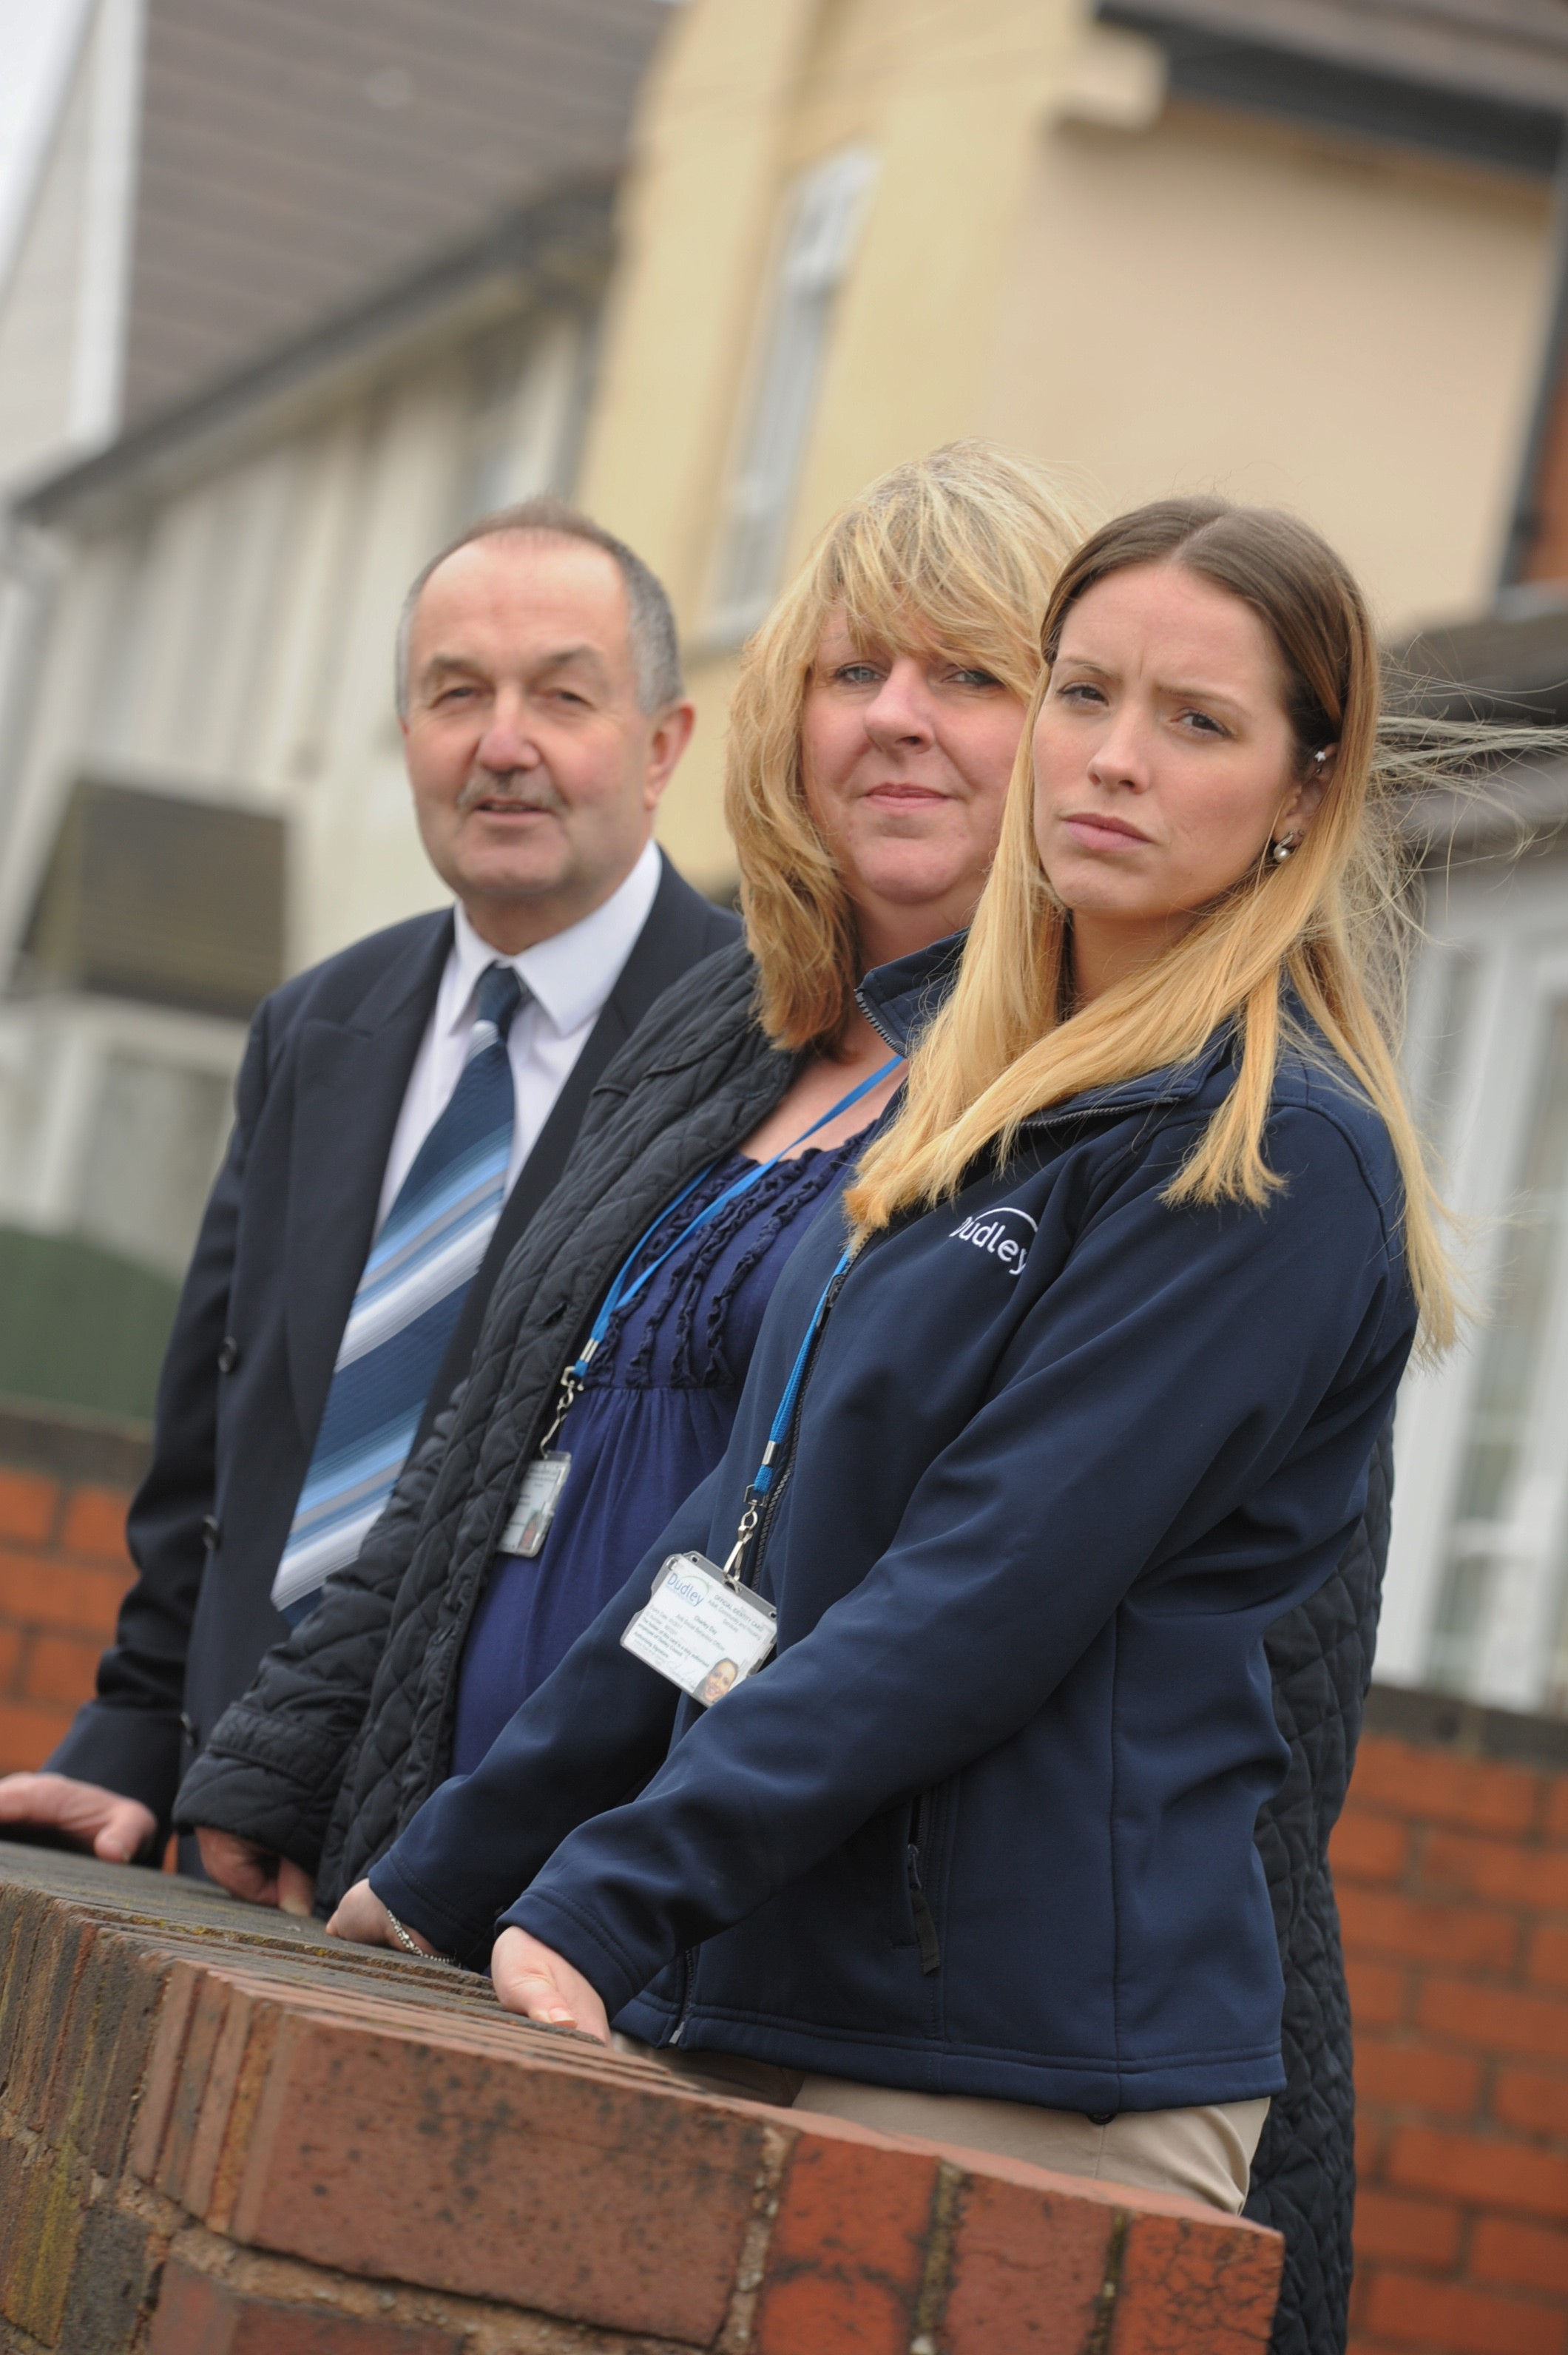 Tackling anti-social behaviour l-r: Cllr Steve Waltho, Tracey Rowe and Charlie Day.